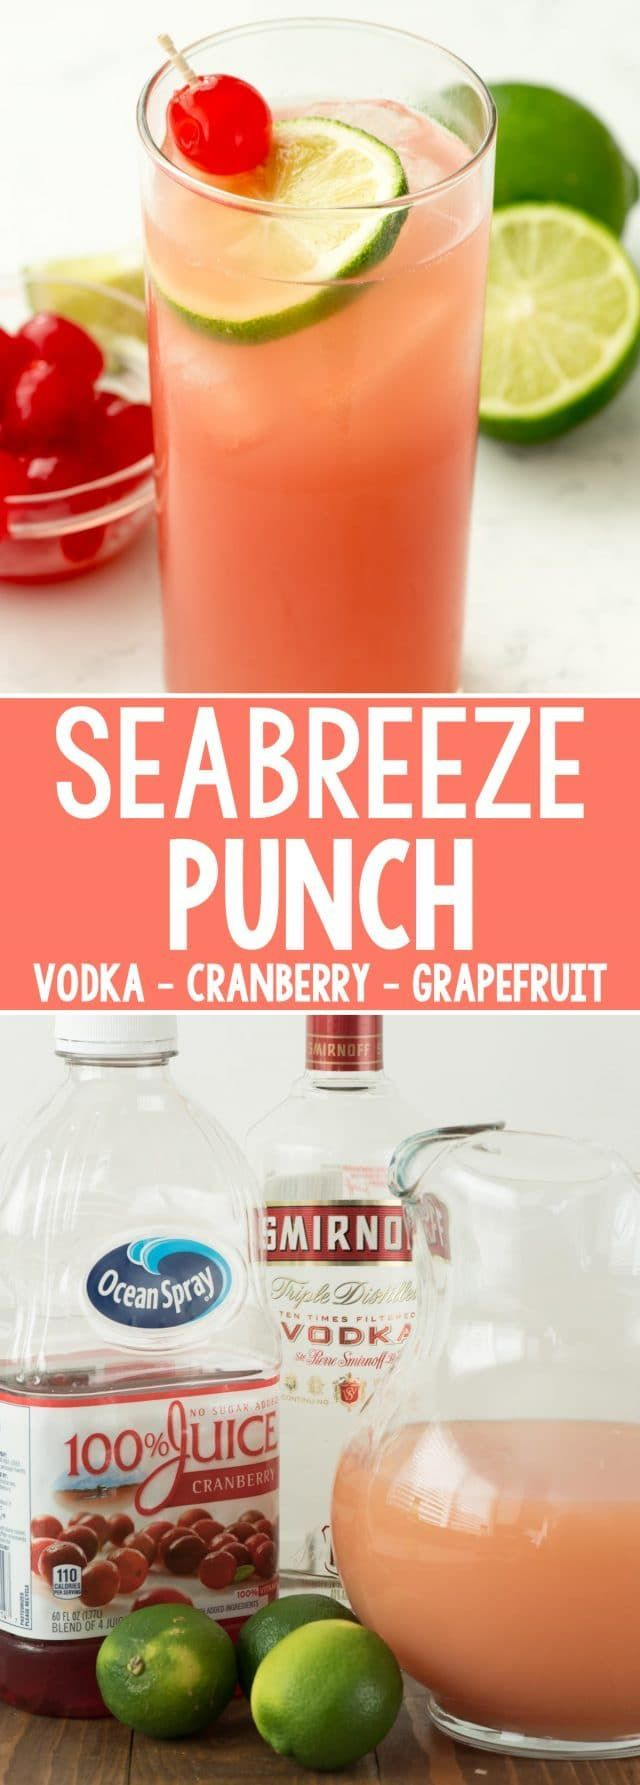 Seabreeze Cocktail Punch - this easy cocktail recipe has just three ingredients: vodka, grapefruit, and cranberry juice. It's the perfect summer punch recipe and leaves you feeling refreshed. ~ Crazy For Crust